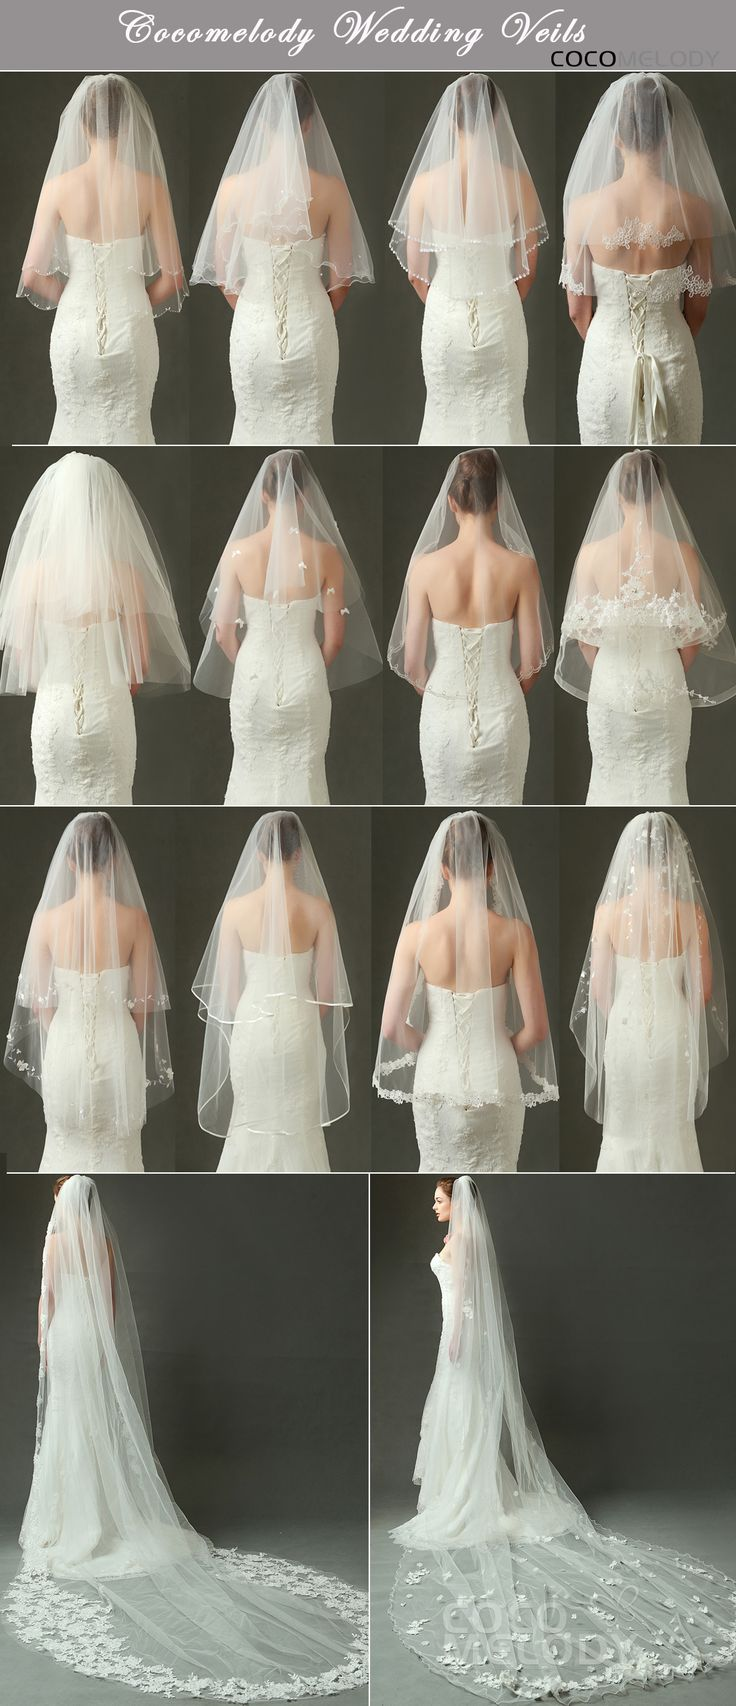 Wedding fashion veils . #wedding #weddingessentials #weddingaccessories…